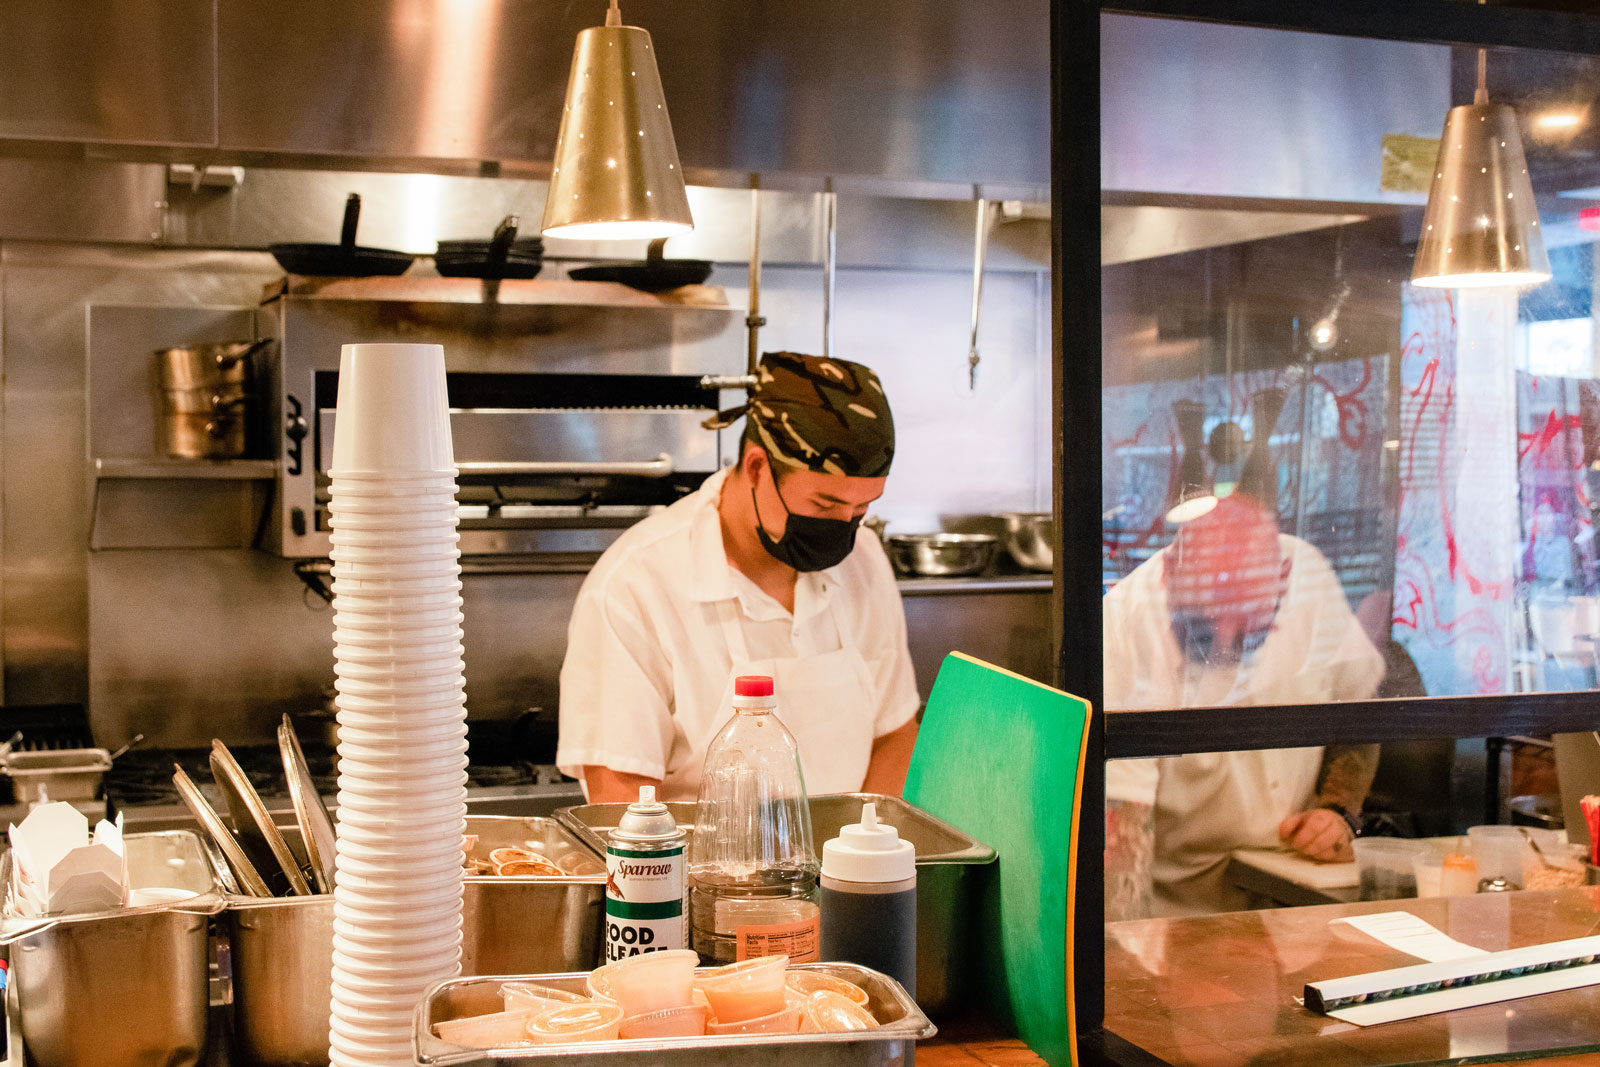 Chefs dilligently working in the restaurant kitchen of Myers + Chang.